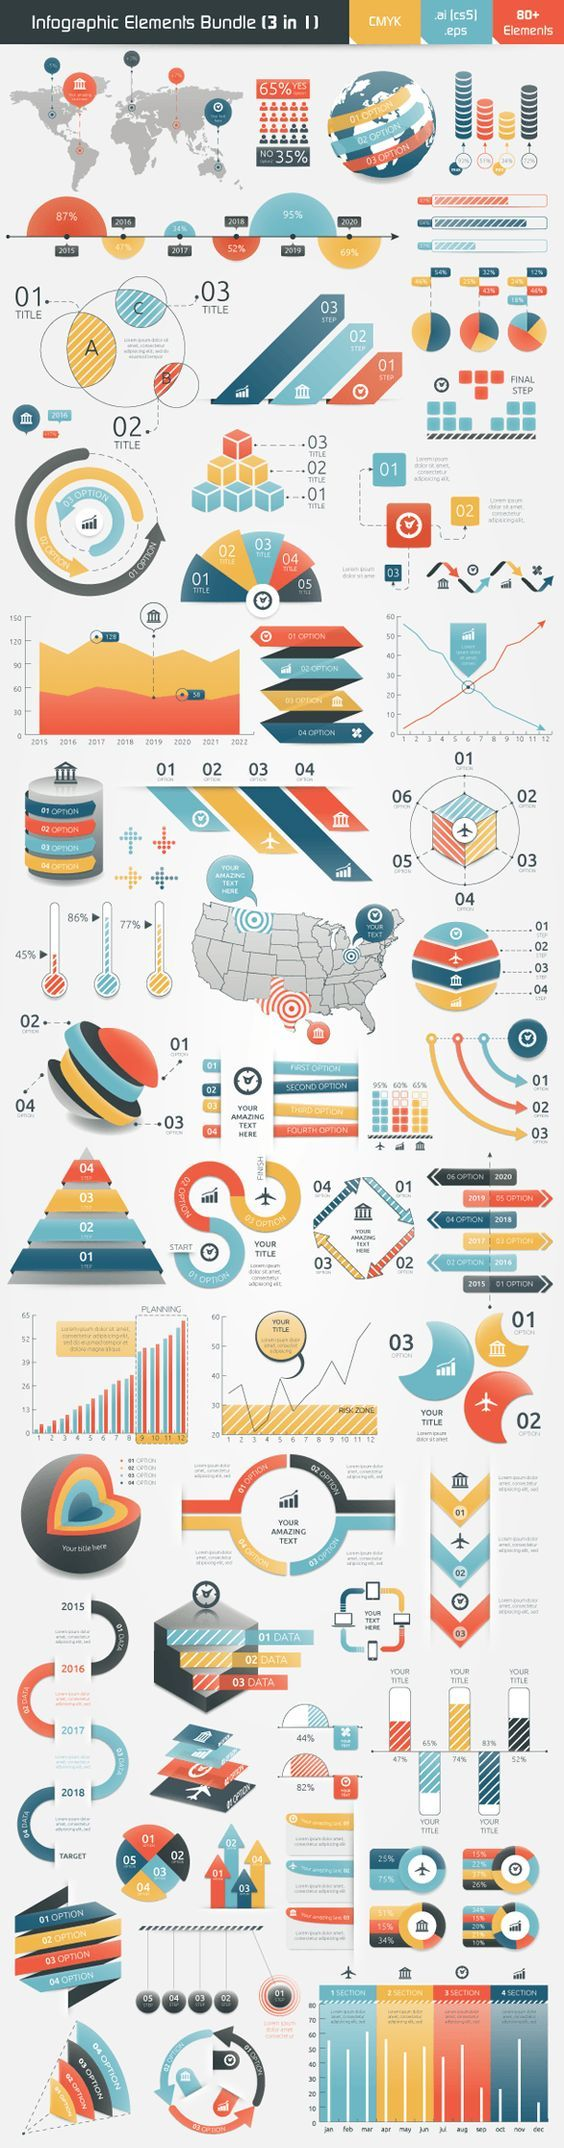 Infographic Elements Bundle (3 in 1) on Behance: